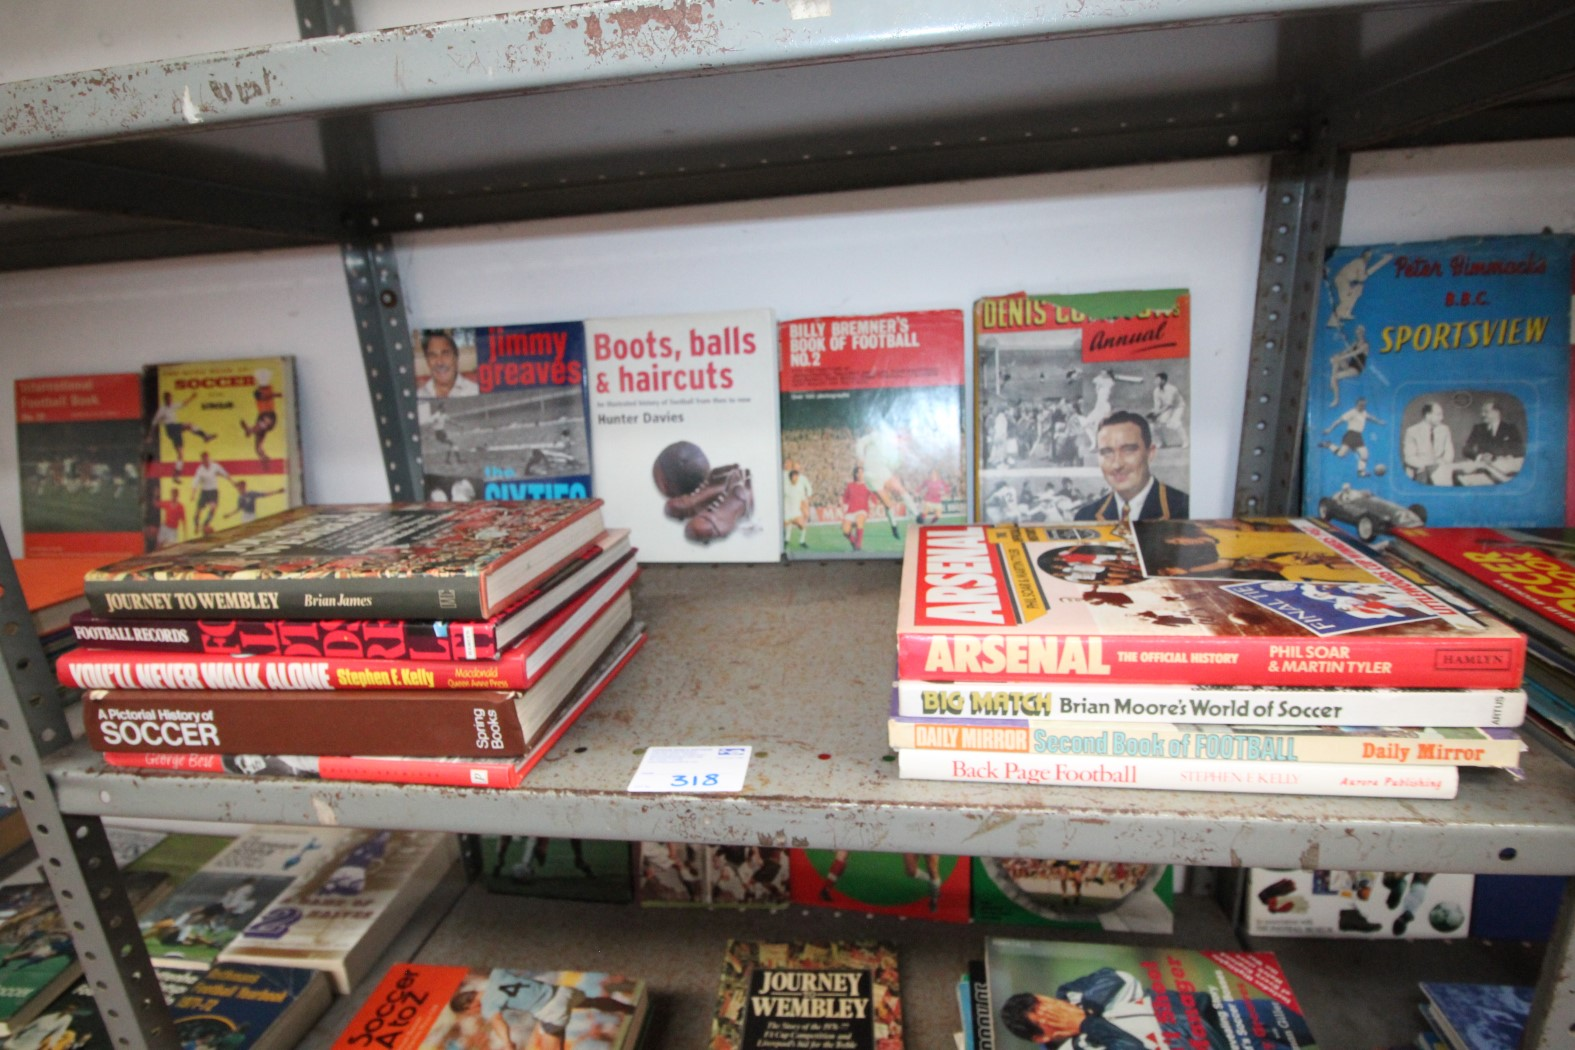 SHELF OF SPORTS BOOKS INCLUDING JIMMY GREAVES, ARSENAL, YOU'LL NEVER WALK ALONE